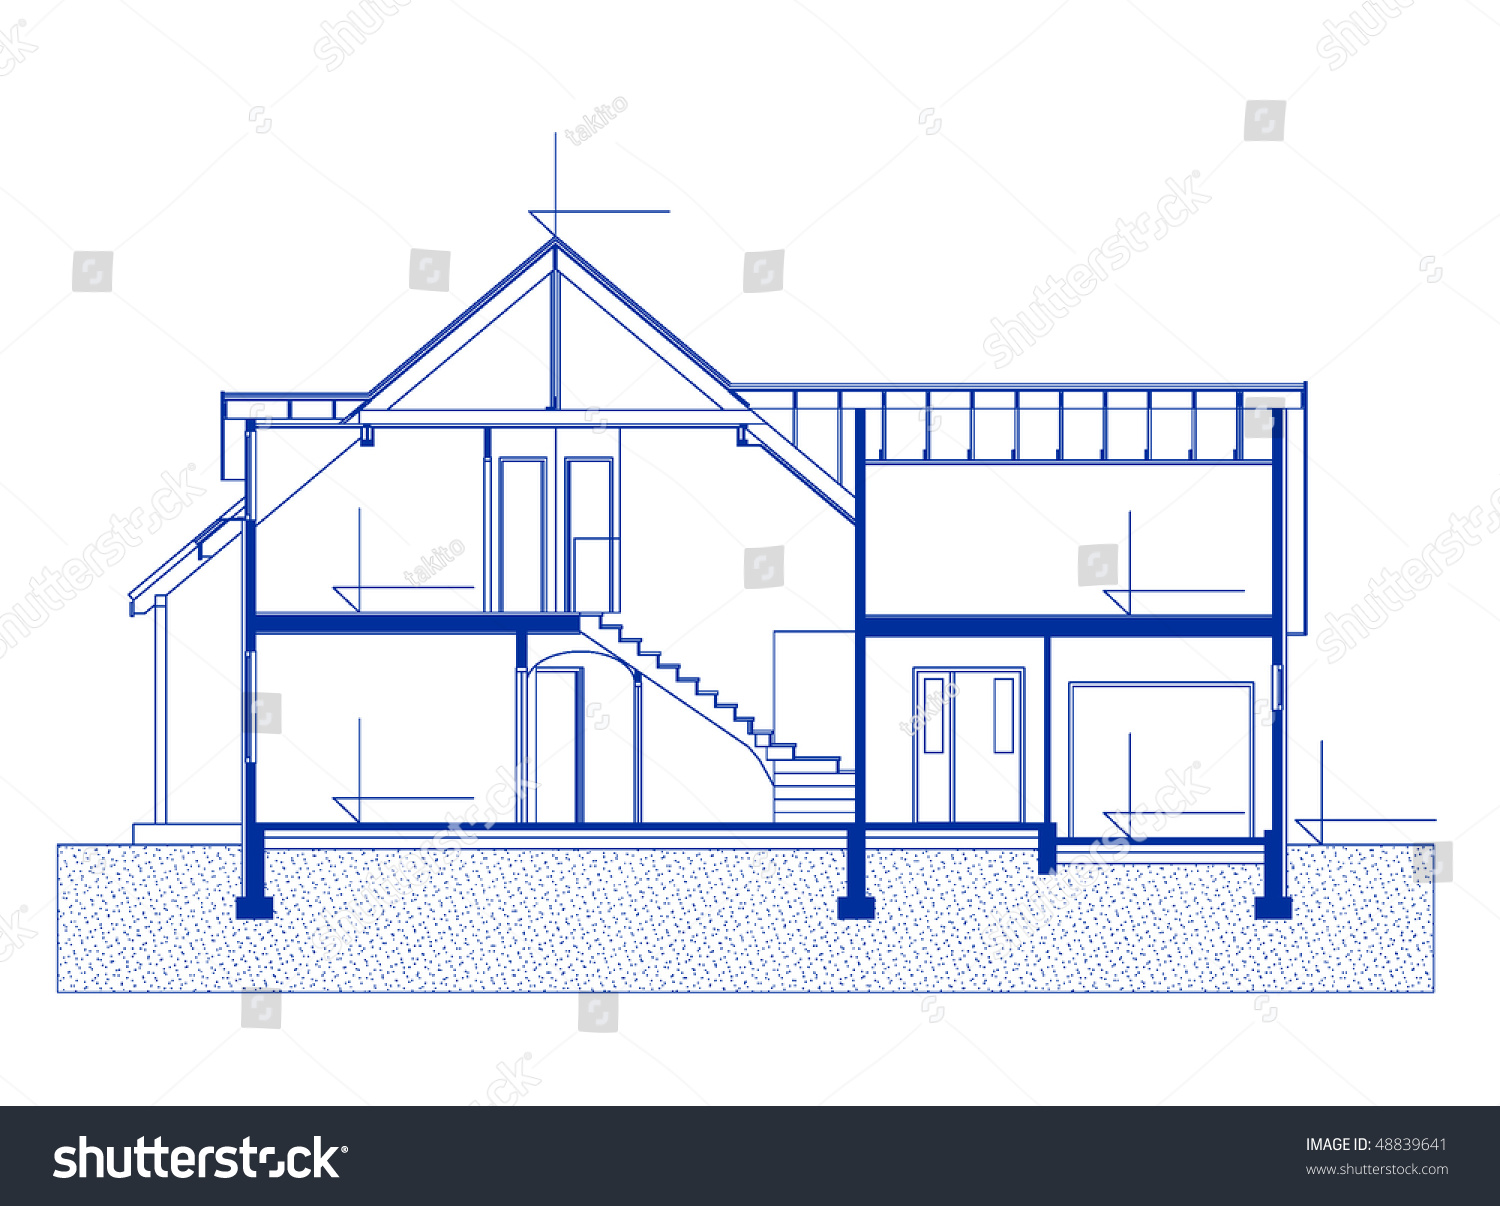 Architectural house blueprint blue color fasade stock for Architecture blueprint